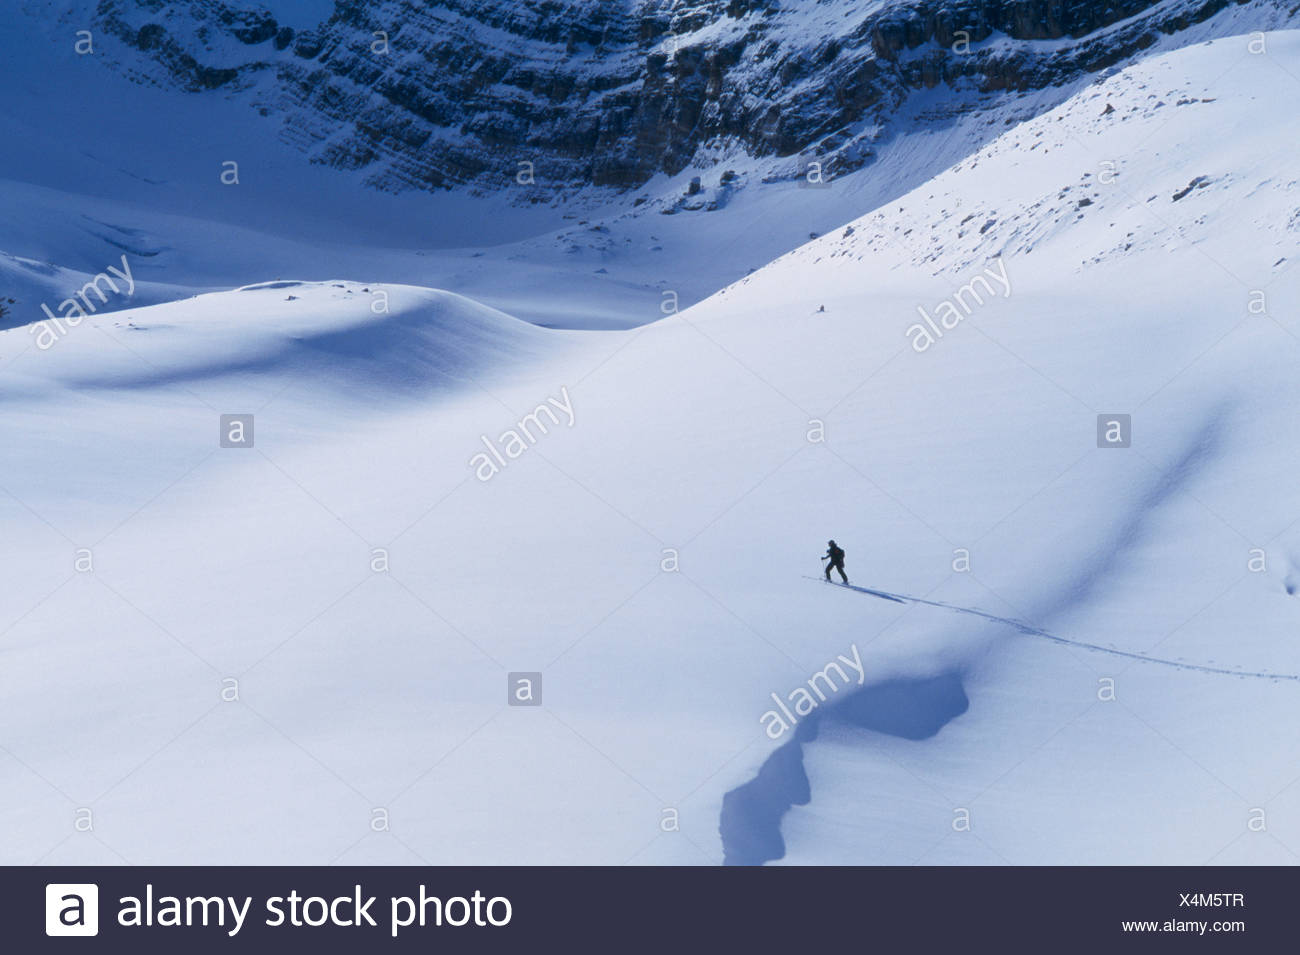 Solo skier skinning up a backcountry slope deep in the Canadian Rockies. - Stock Image